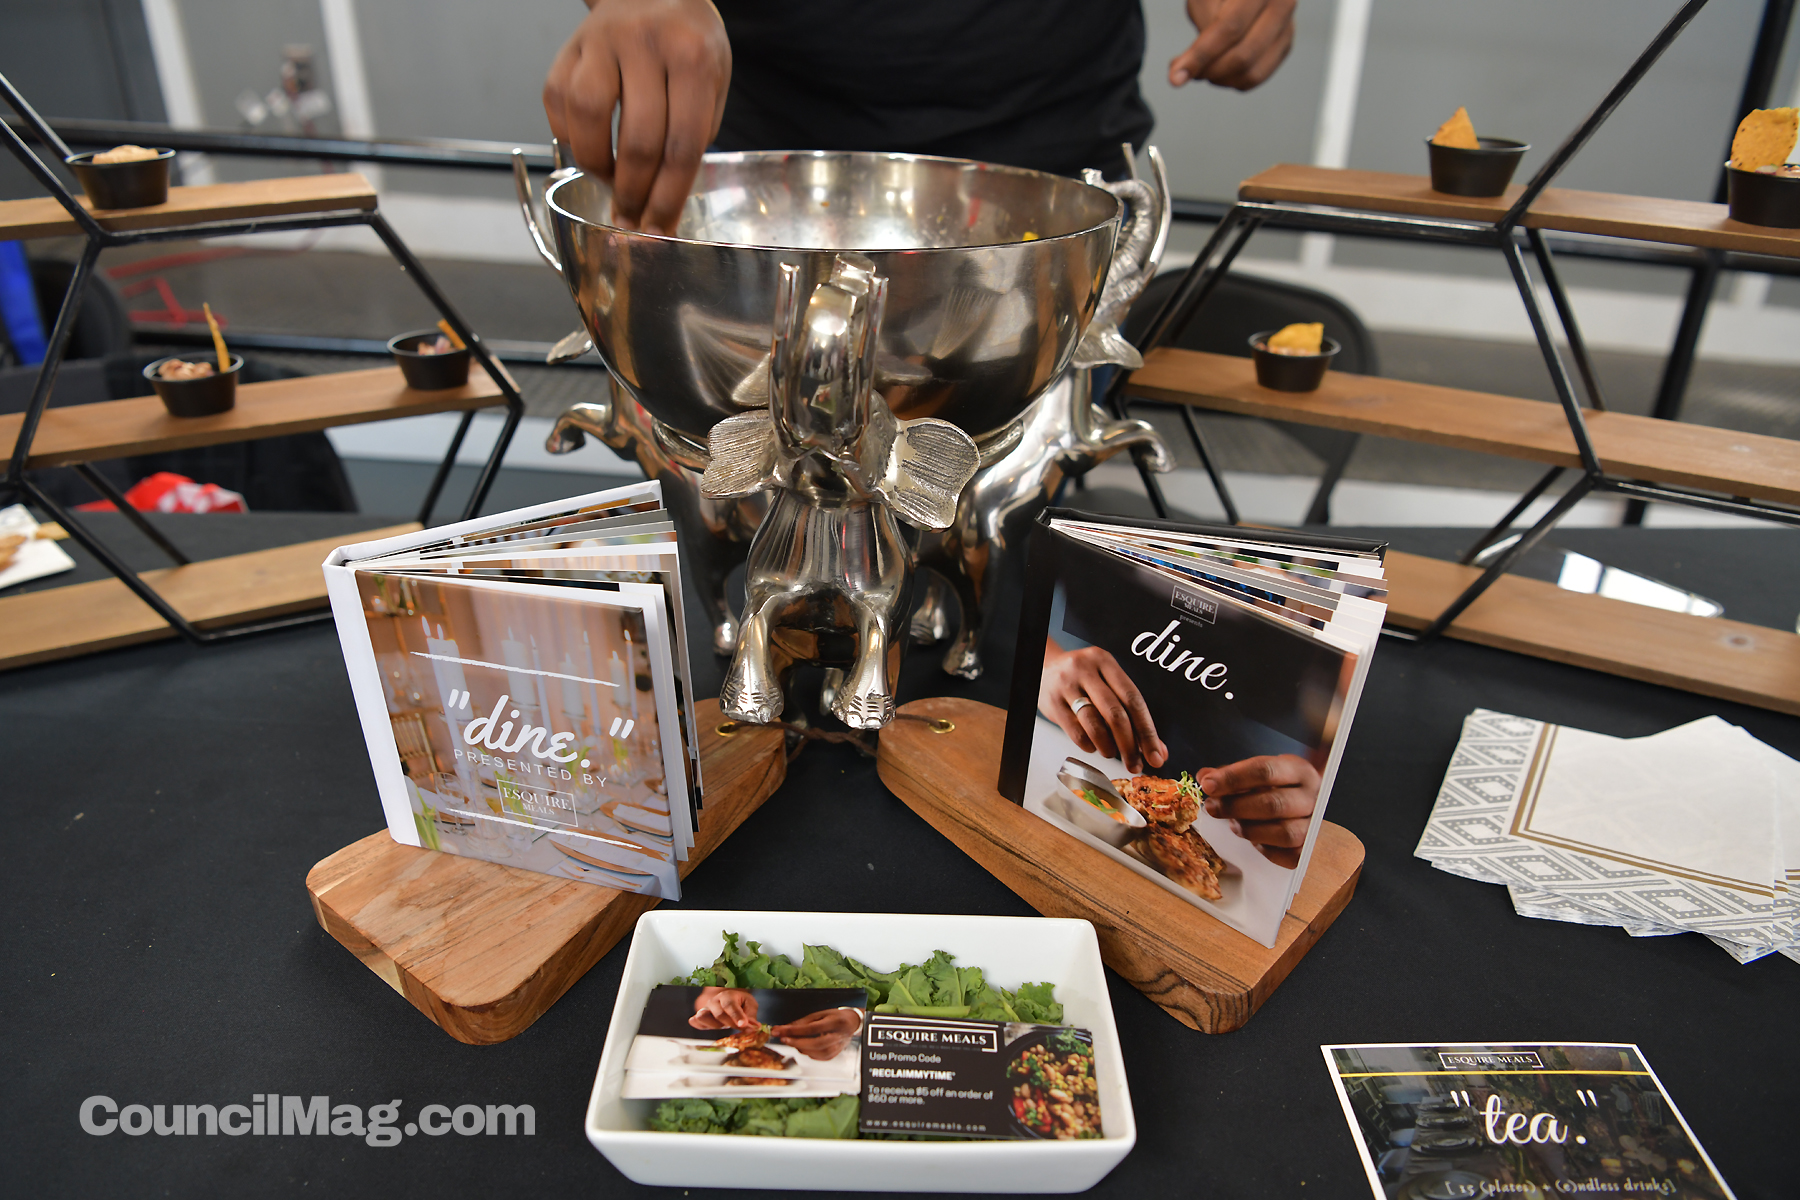 Esquire Meals , is a health conscious gourmet meal prep business. Kenneth Watson's Esquire   Meals – which has been in business for eight years – offers pick-up and delivery as well as catering. In addition, there were representatives from  Gandhi Health Career Services  and  University of Maryland, Baltimore .